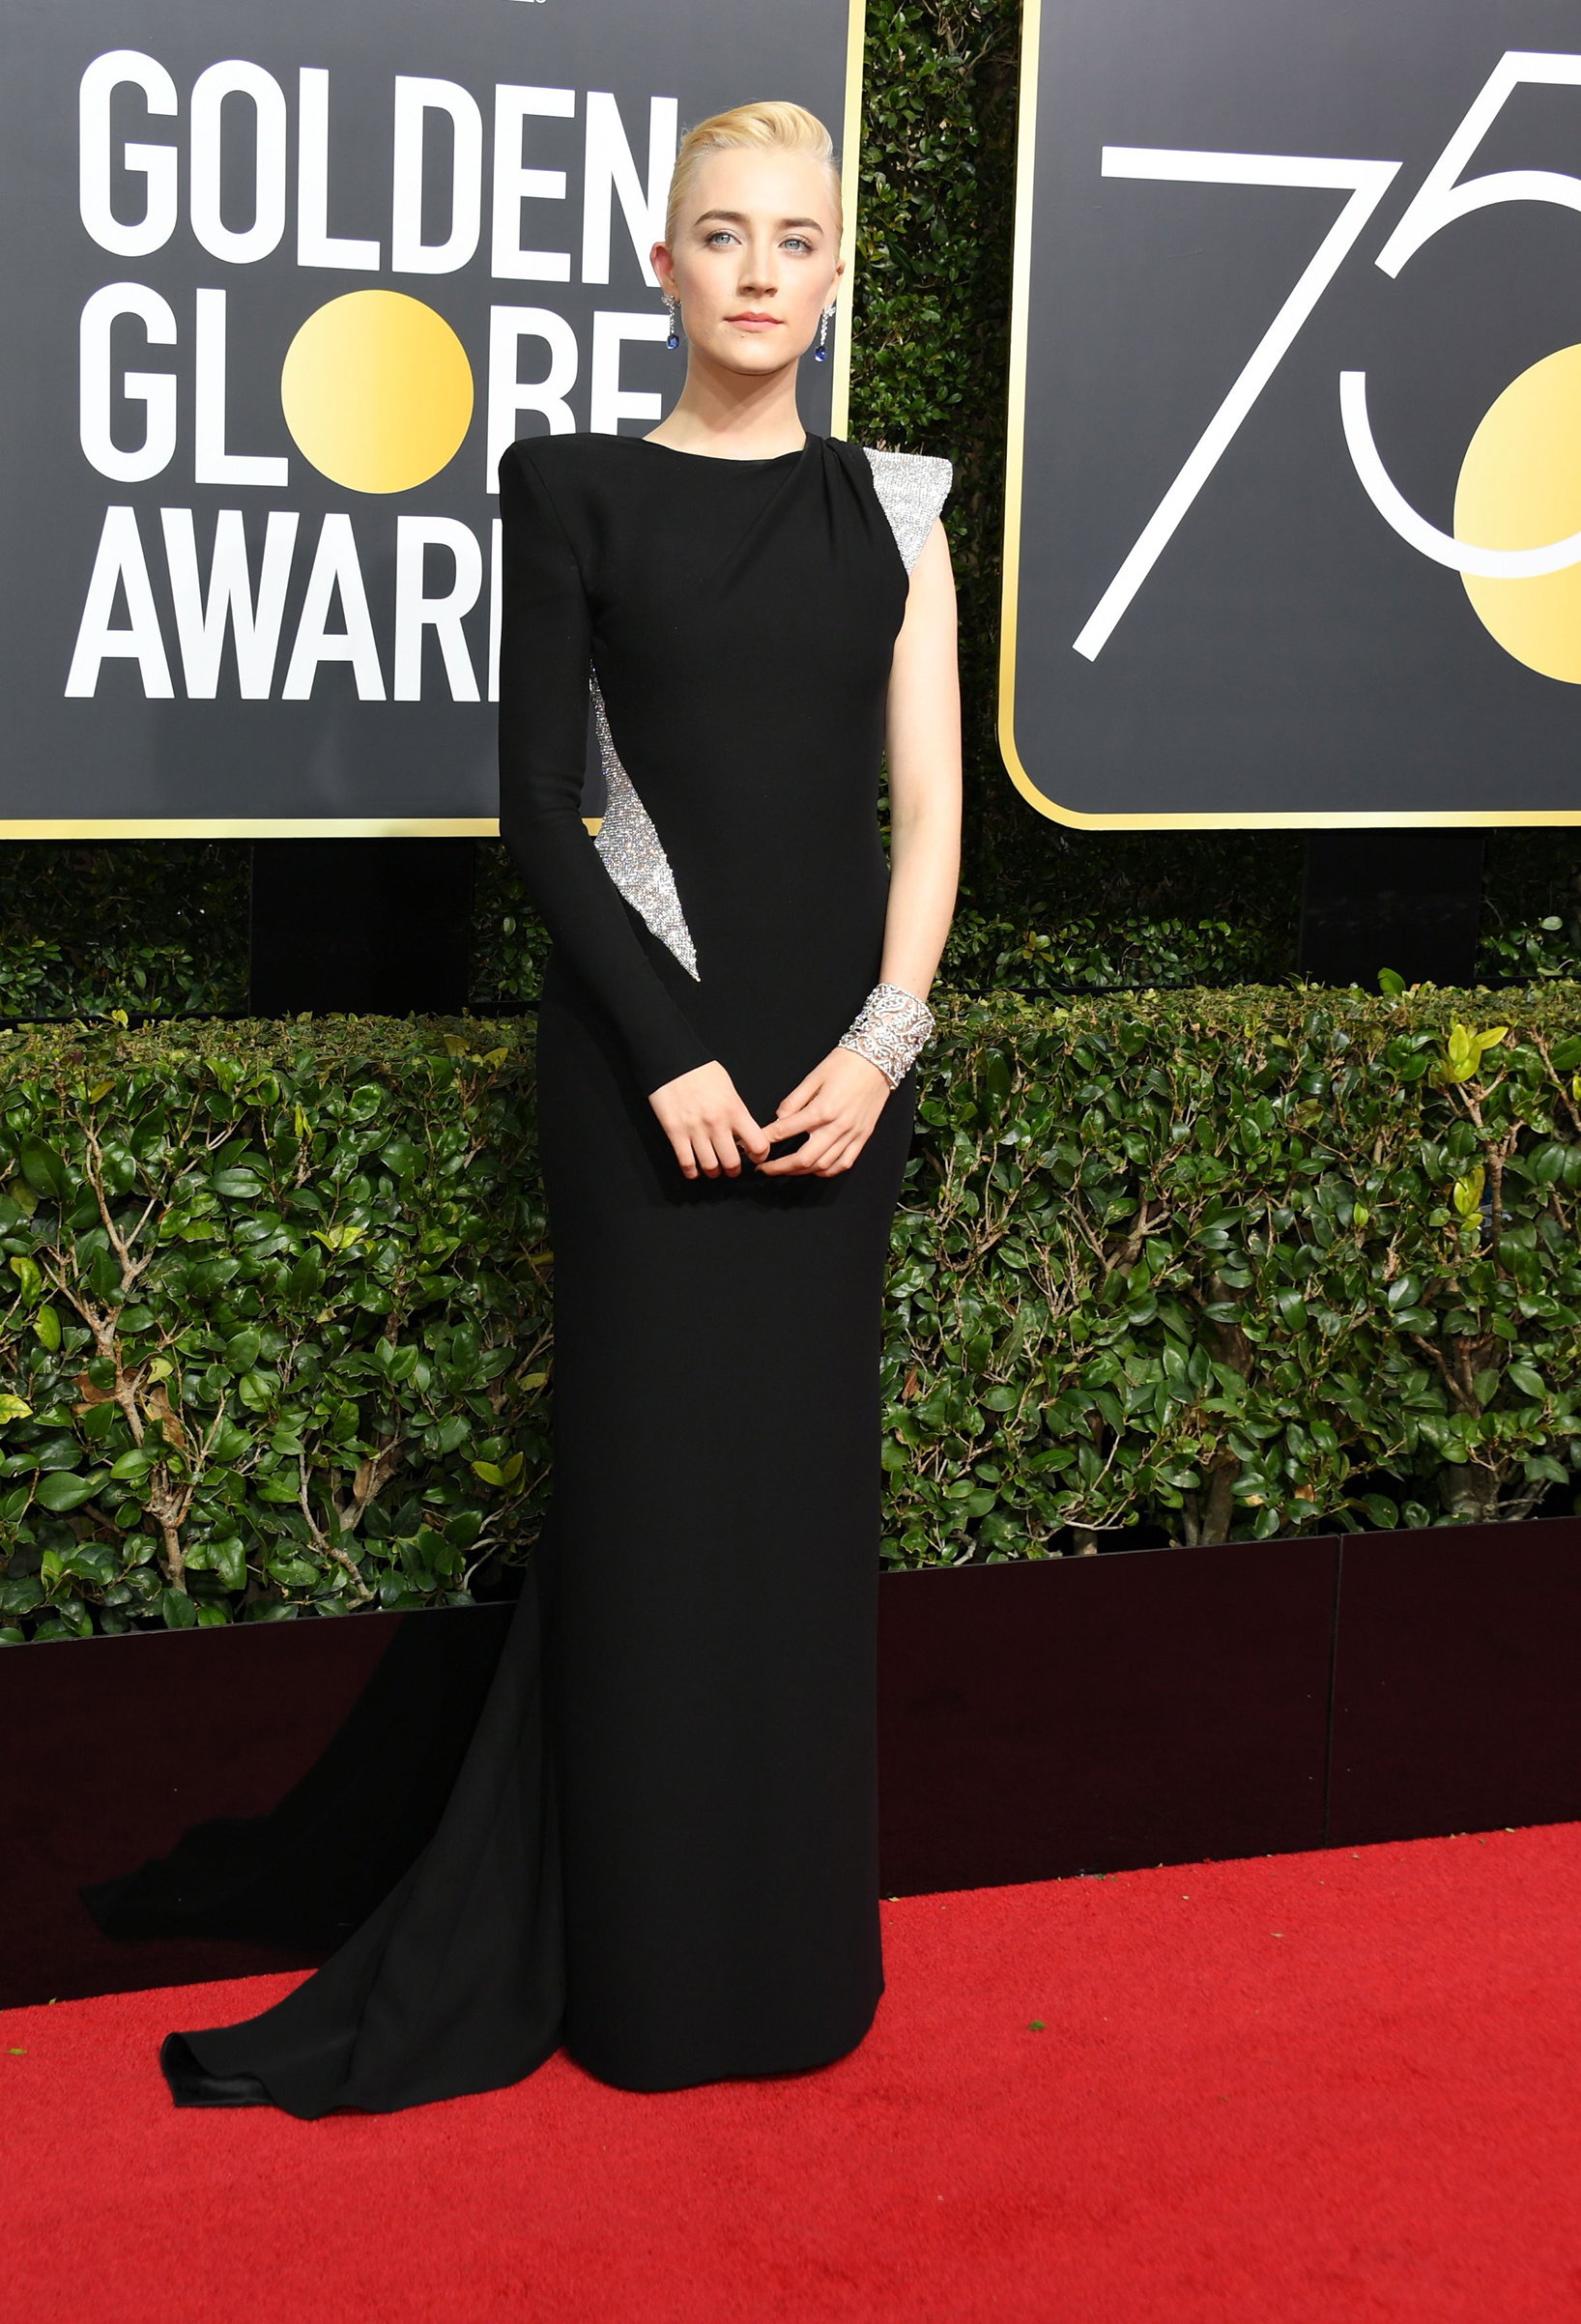 Saoirse Ronan arrives for the 75th Golden Globe Awards on January 7, 2018, in Beverly Hills, California.